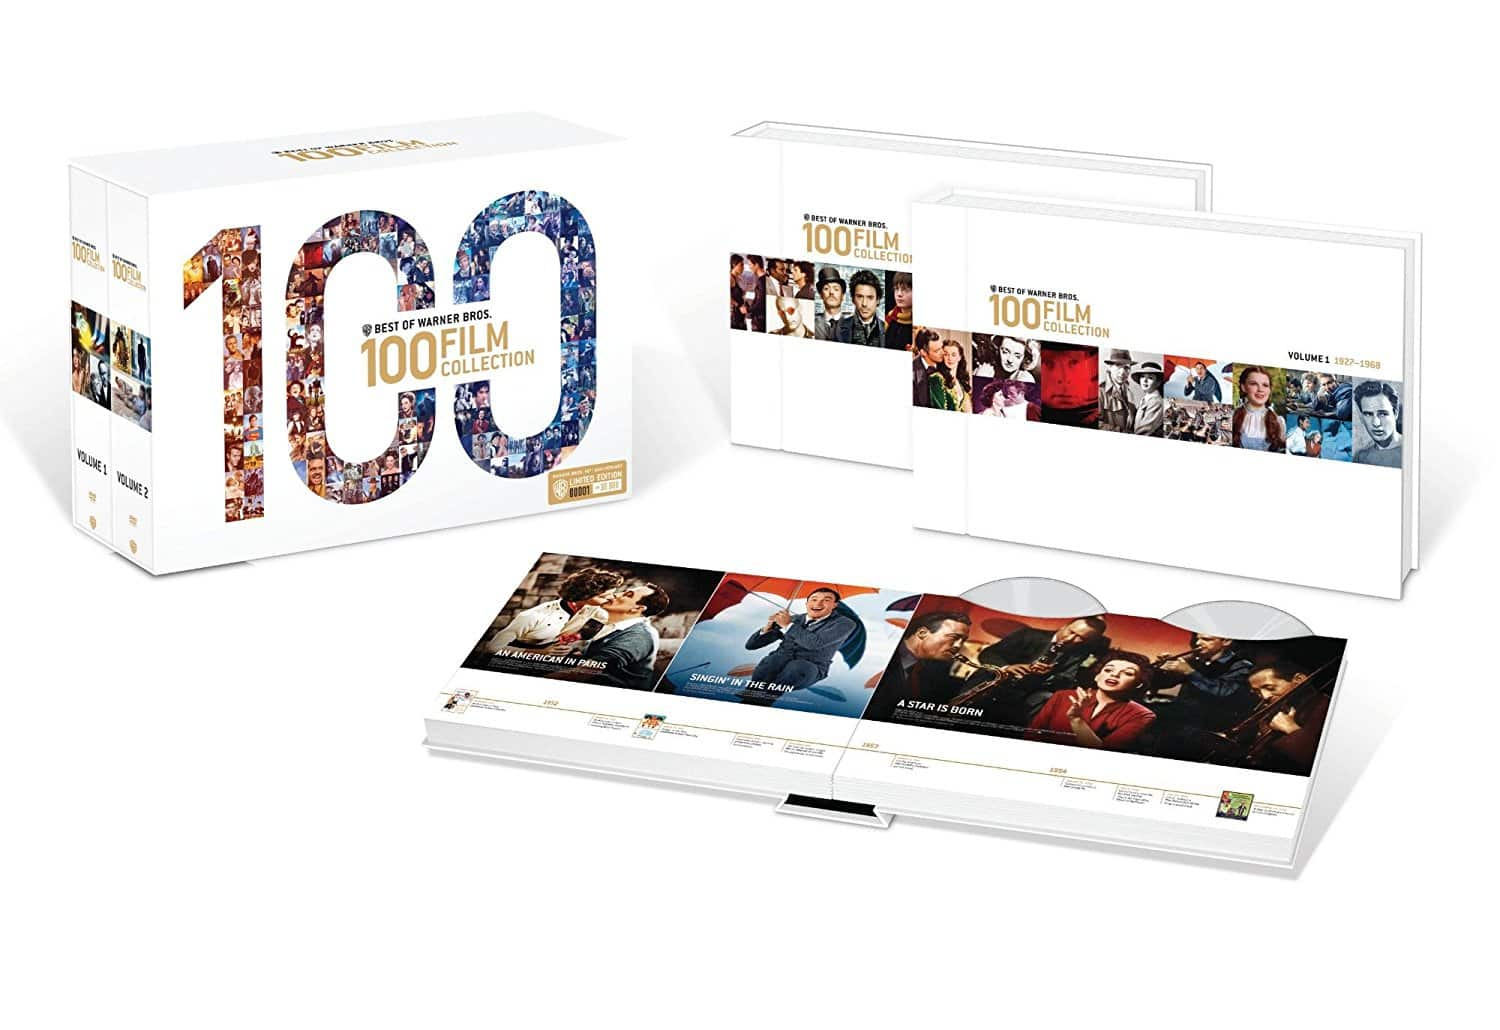 Best of Warner Bros: 100-Film Collection: 90th Anniversary Limited Edition Giftset (DVD) $63.99 + Free Shipping via Amazon